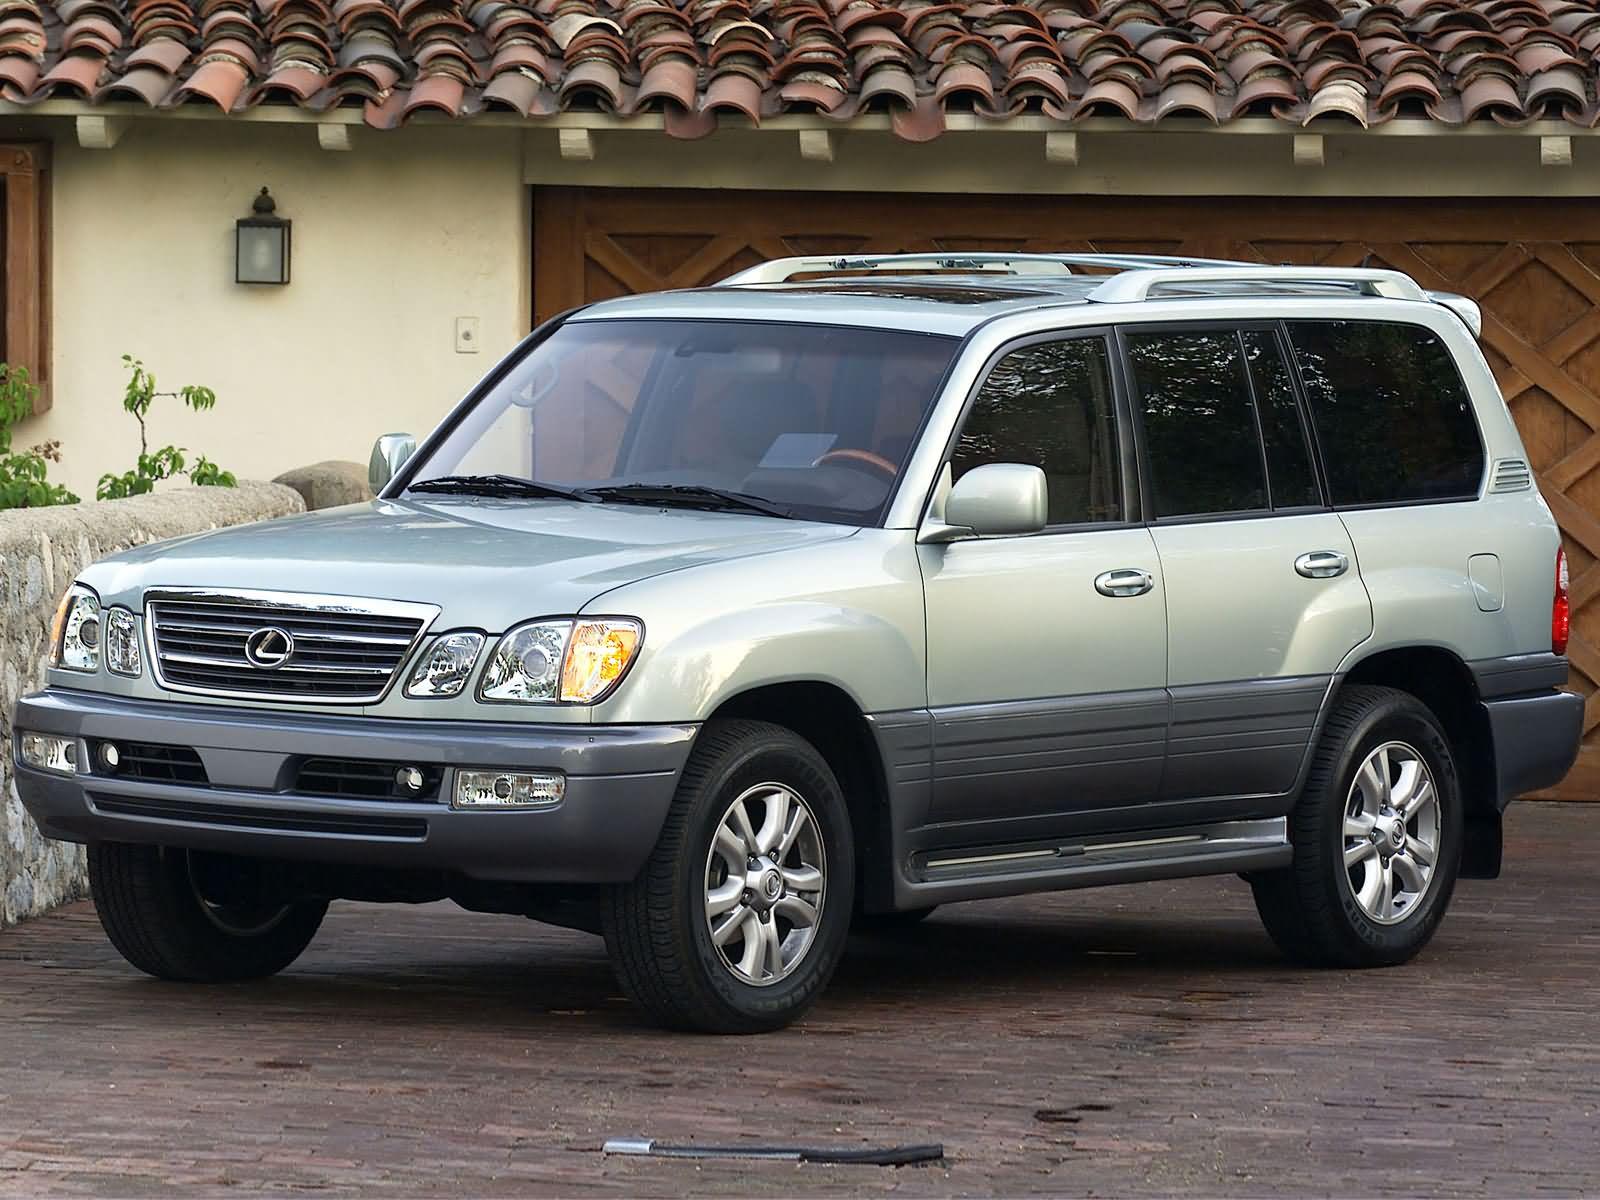 Lexus LX 470 1999 photo - 1